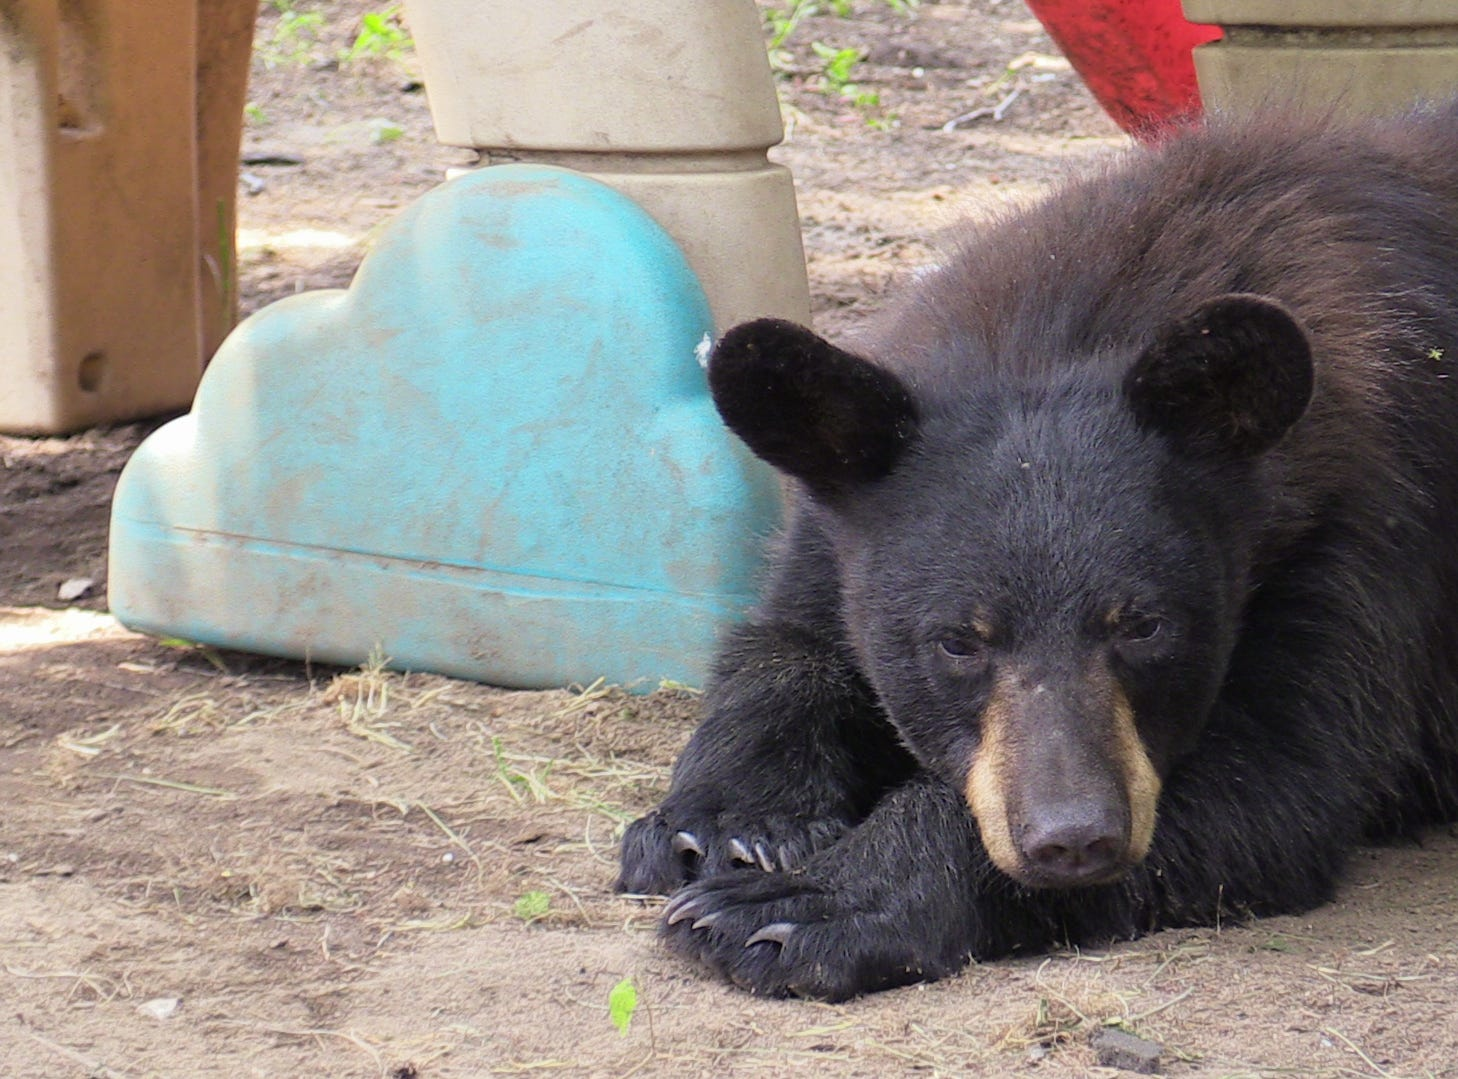 A young black bear roamed the streets of the Village of Haverstraw and was finally captured by the New York Department of Environmental Conservation on June 11, 2018.  The bear was tagged, measured and weigh before being transported to its new home in the Catskills.